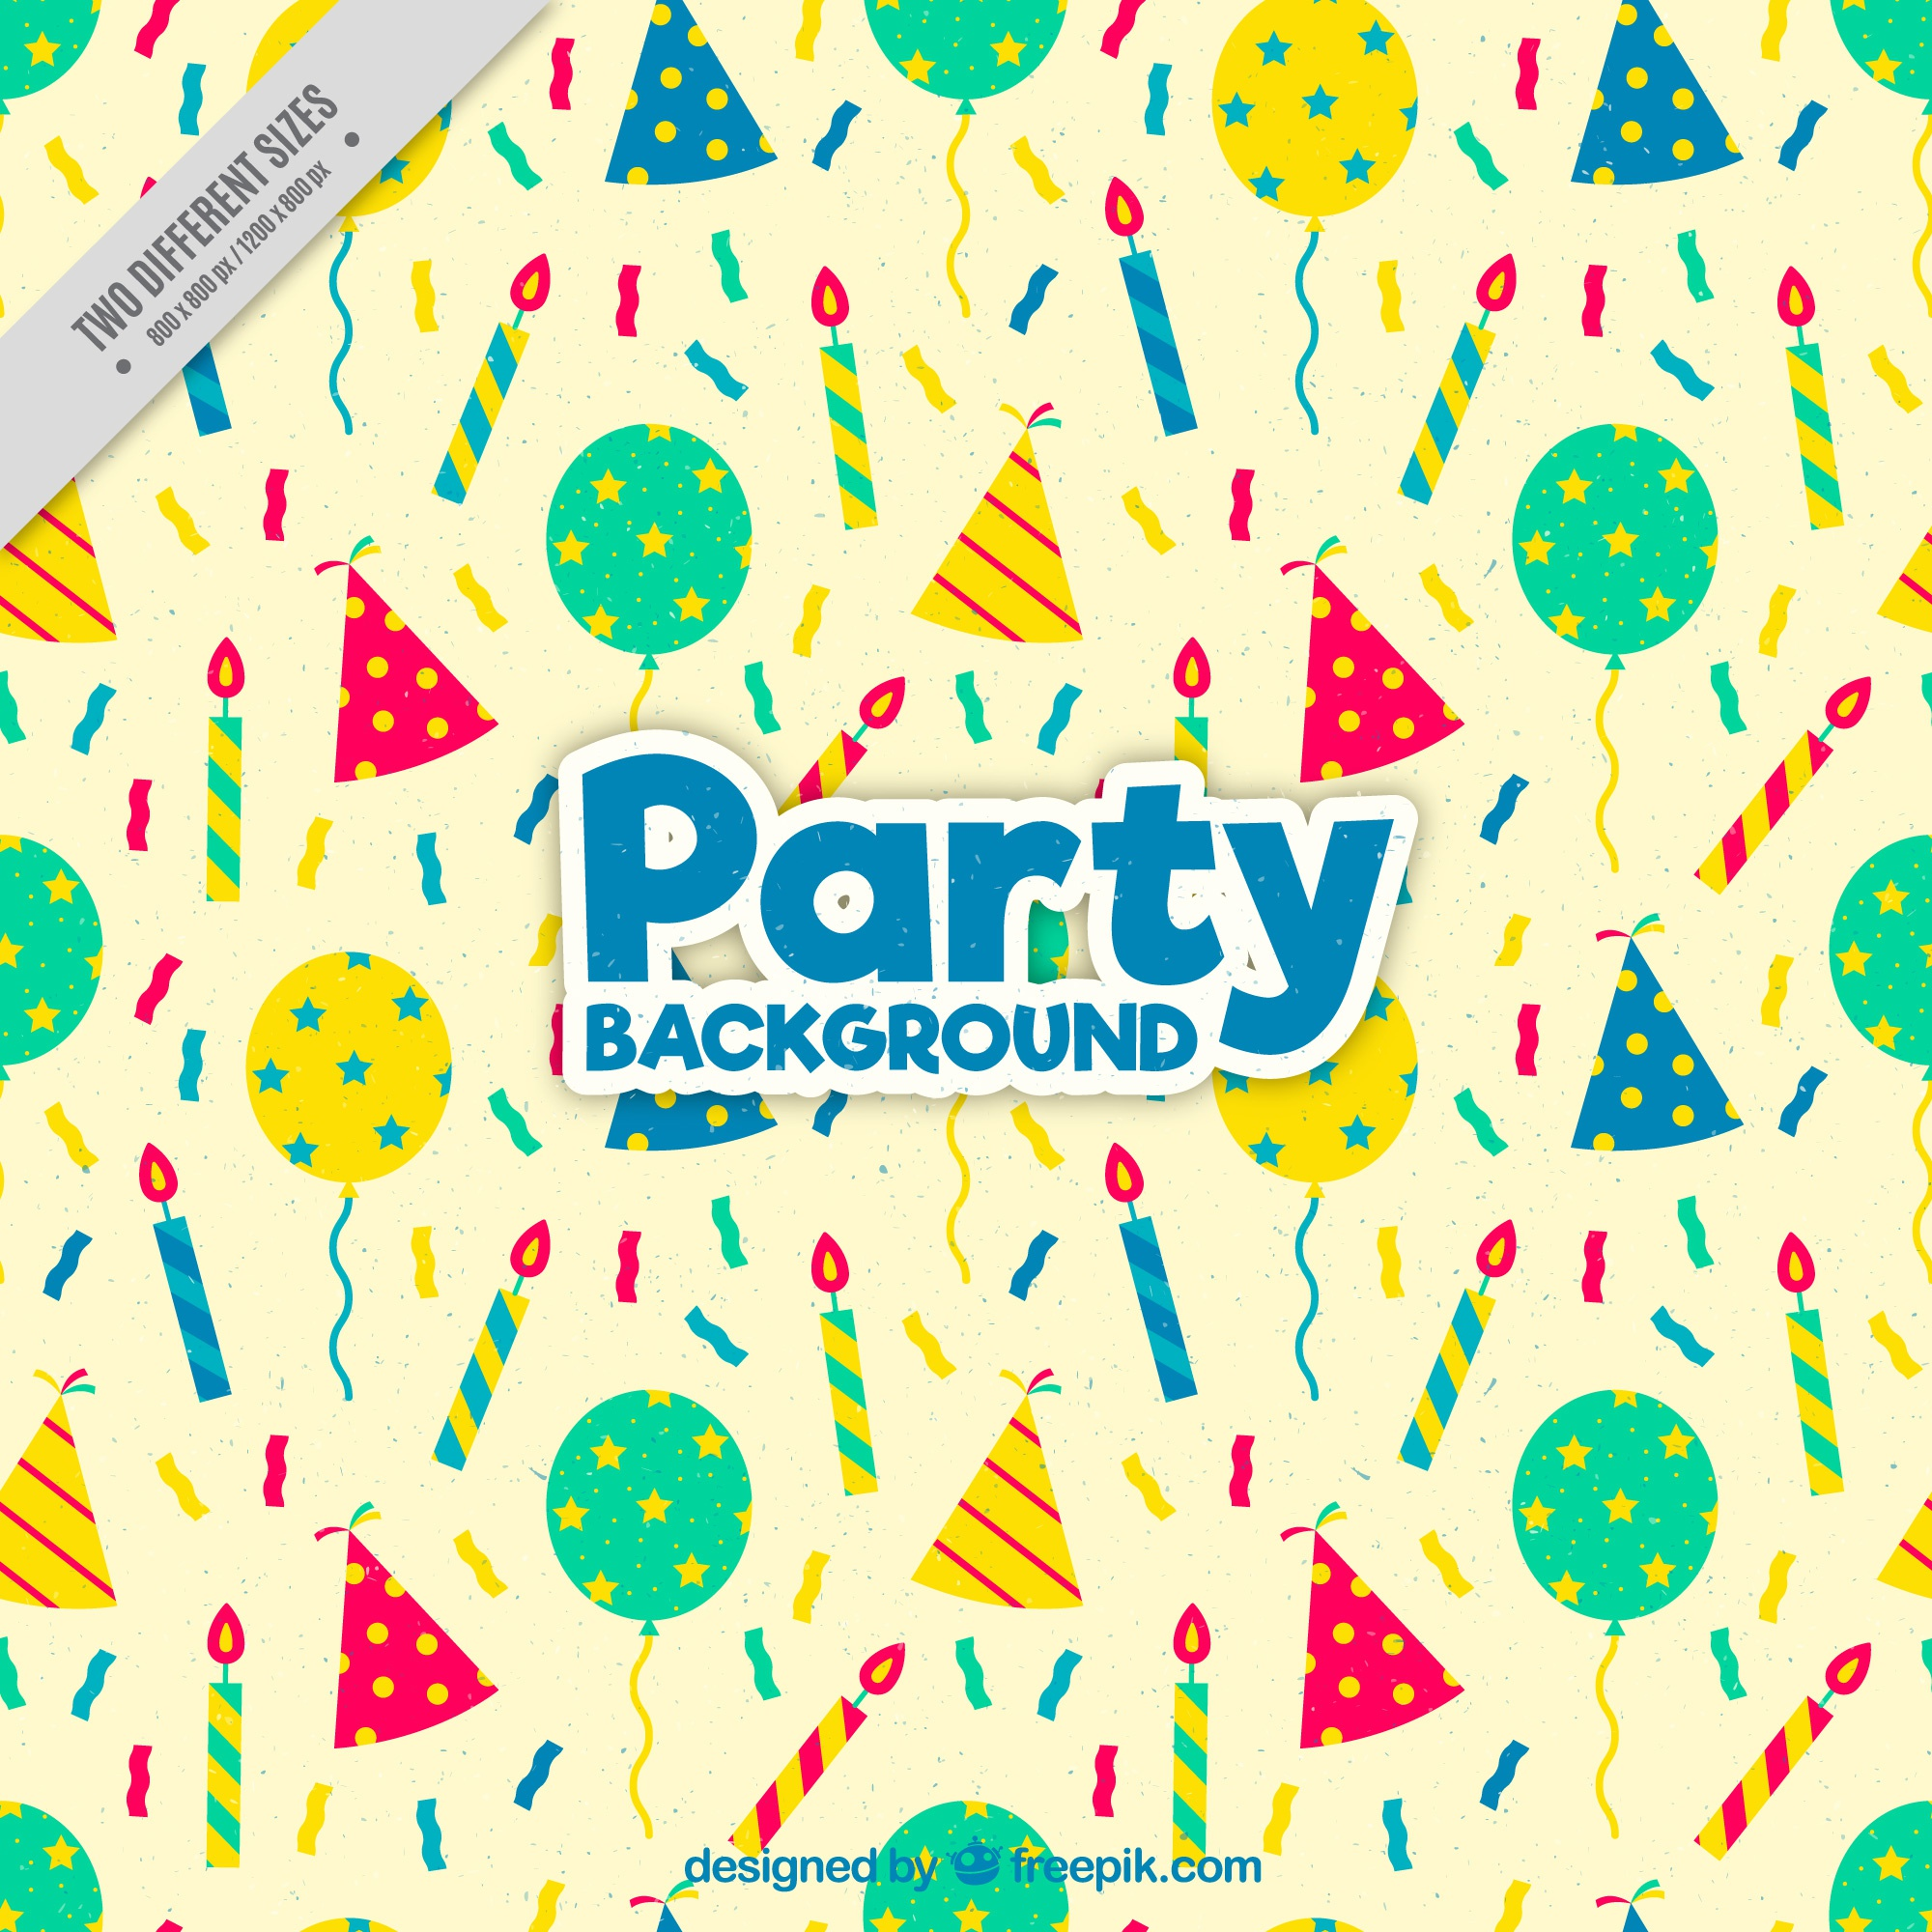 Vintage background with party hats and balloons